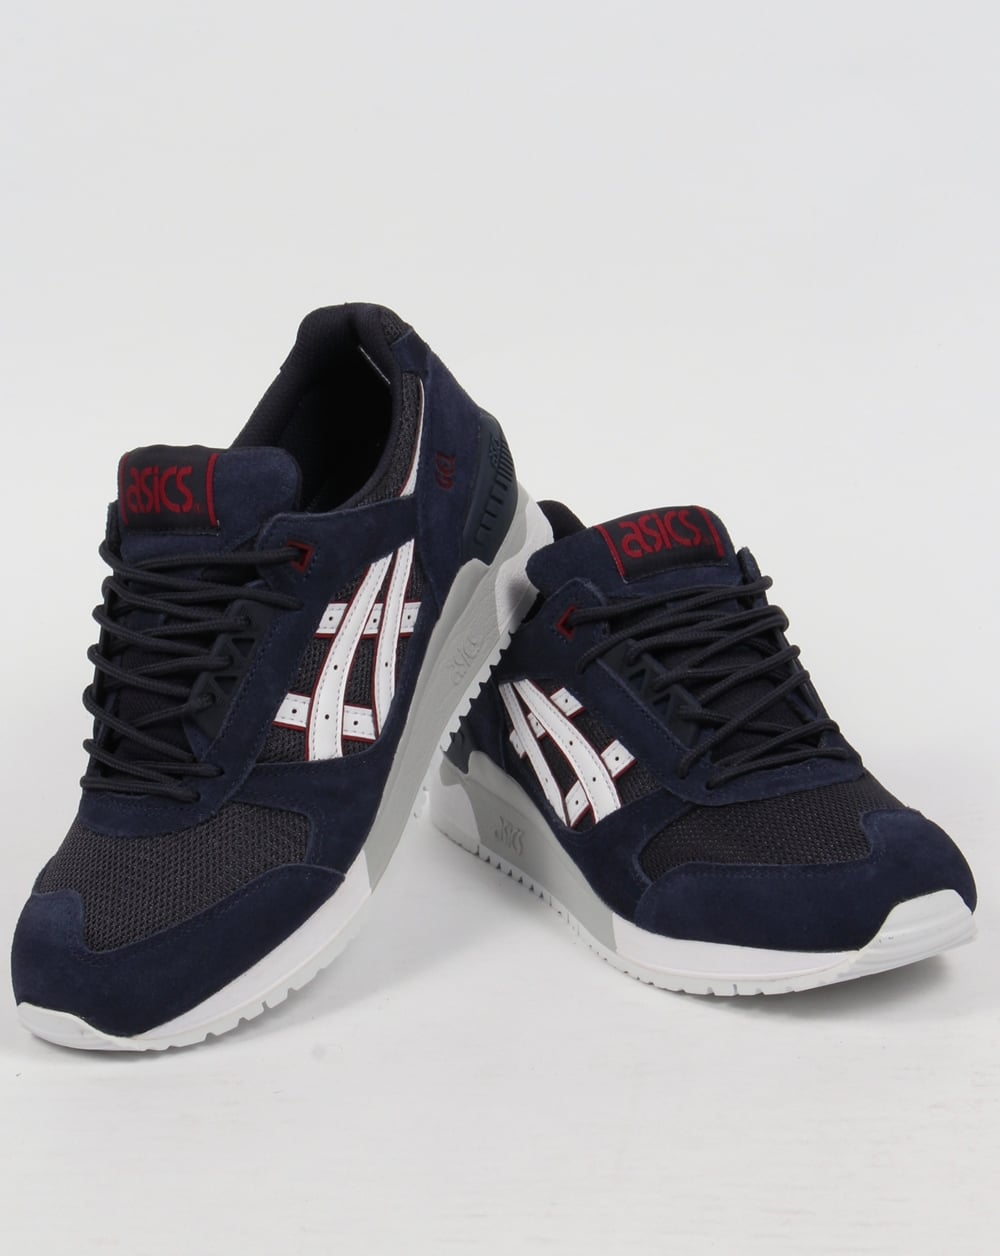 asics gel respector trainers navy white 90s runner shoes. Black Bedroom Furniture Sets. Home Design Ideas